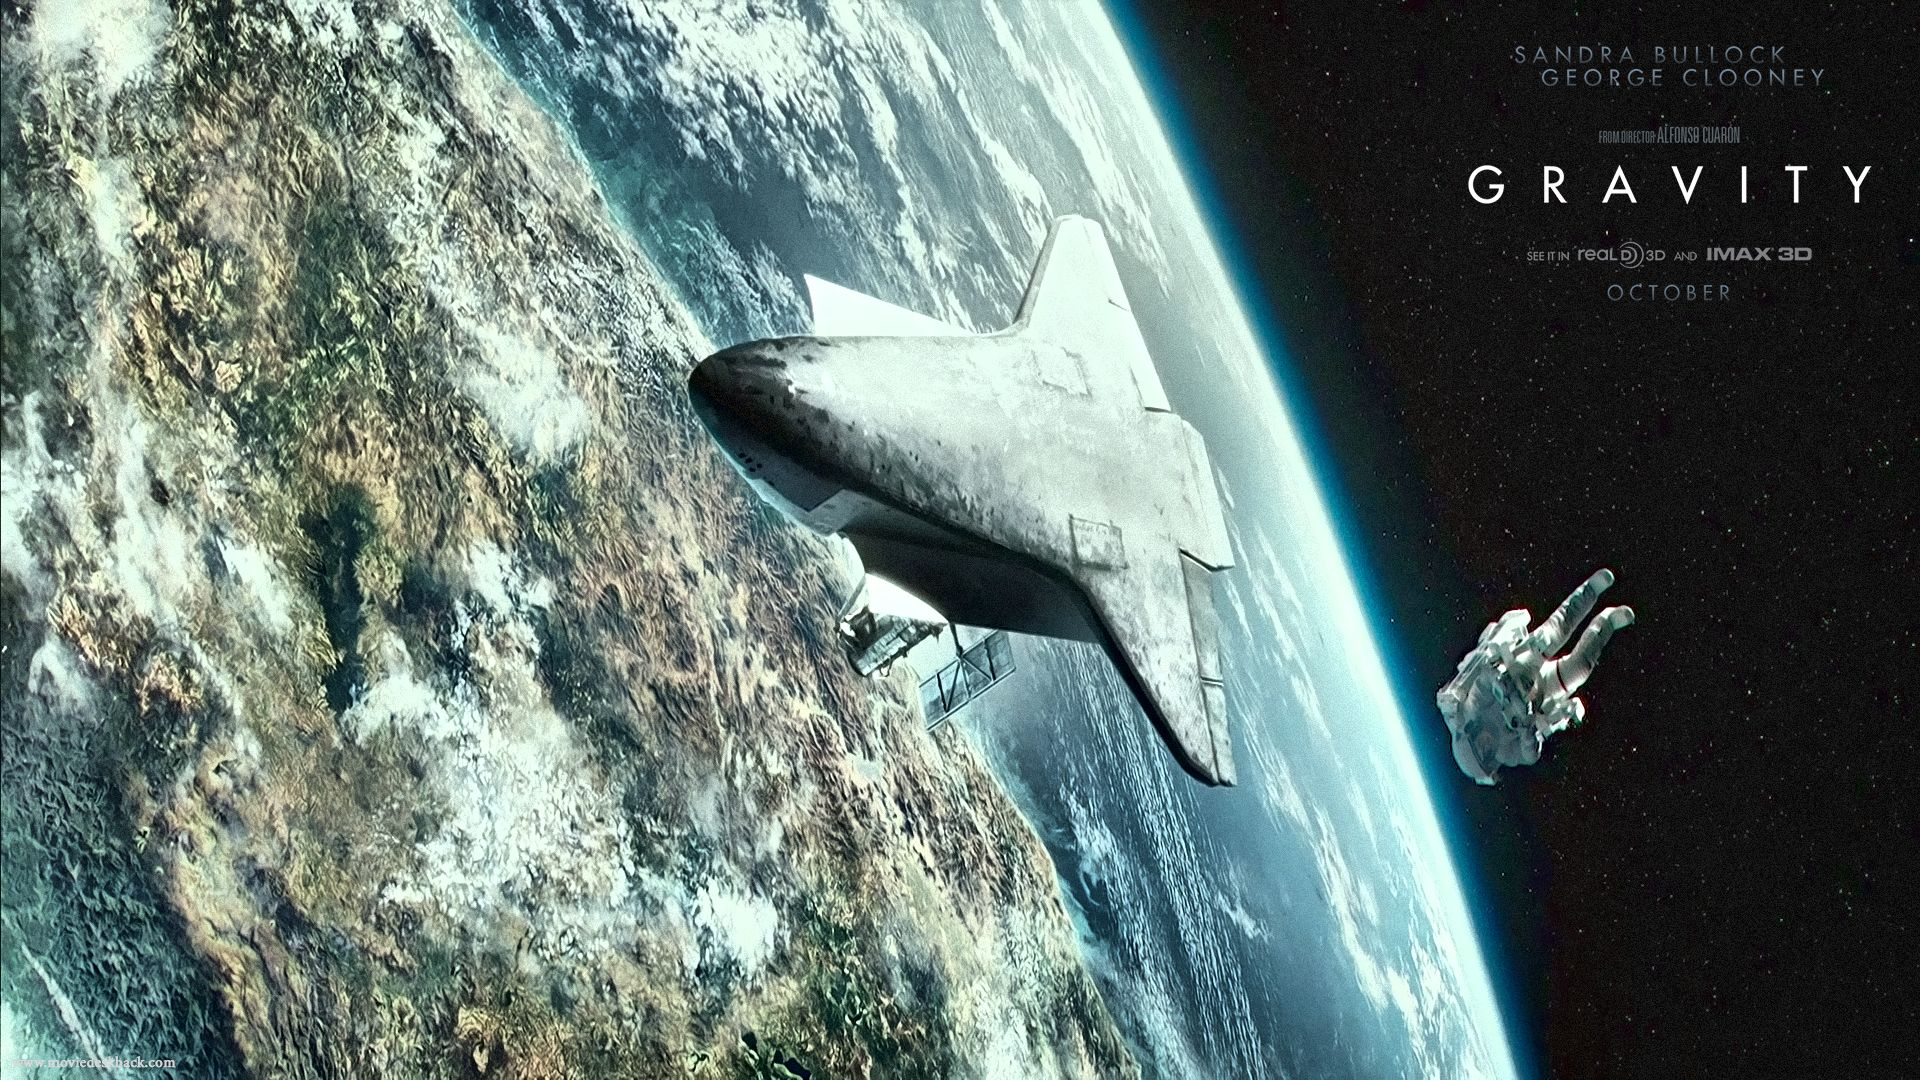 gravity 3d (2013) movie is now available in hd version at